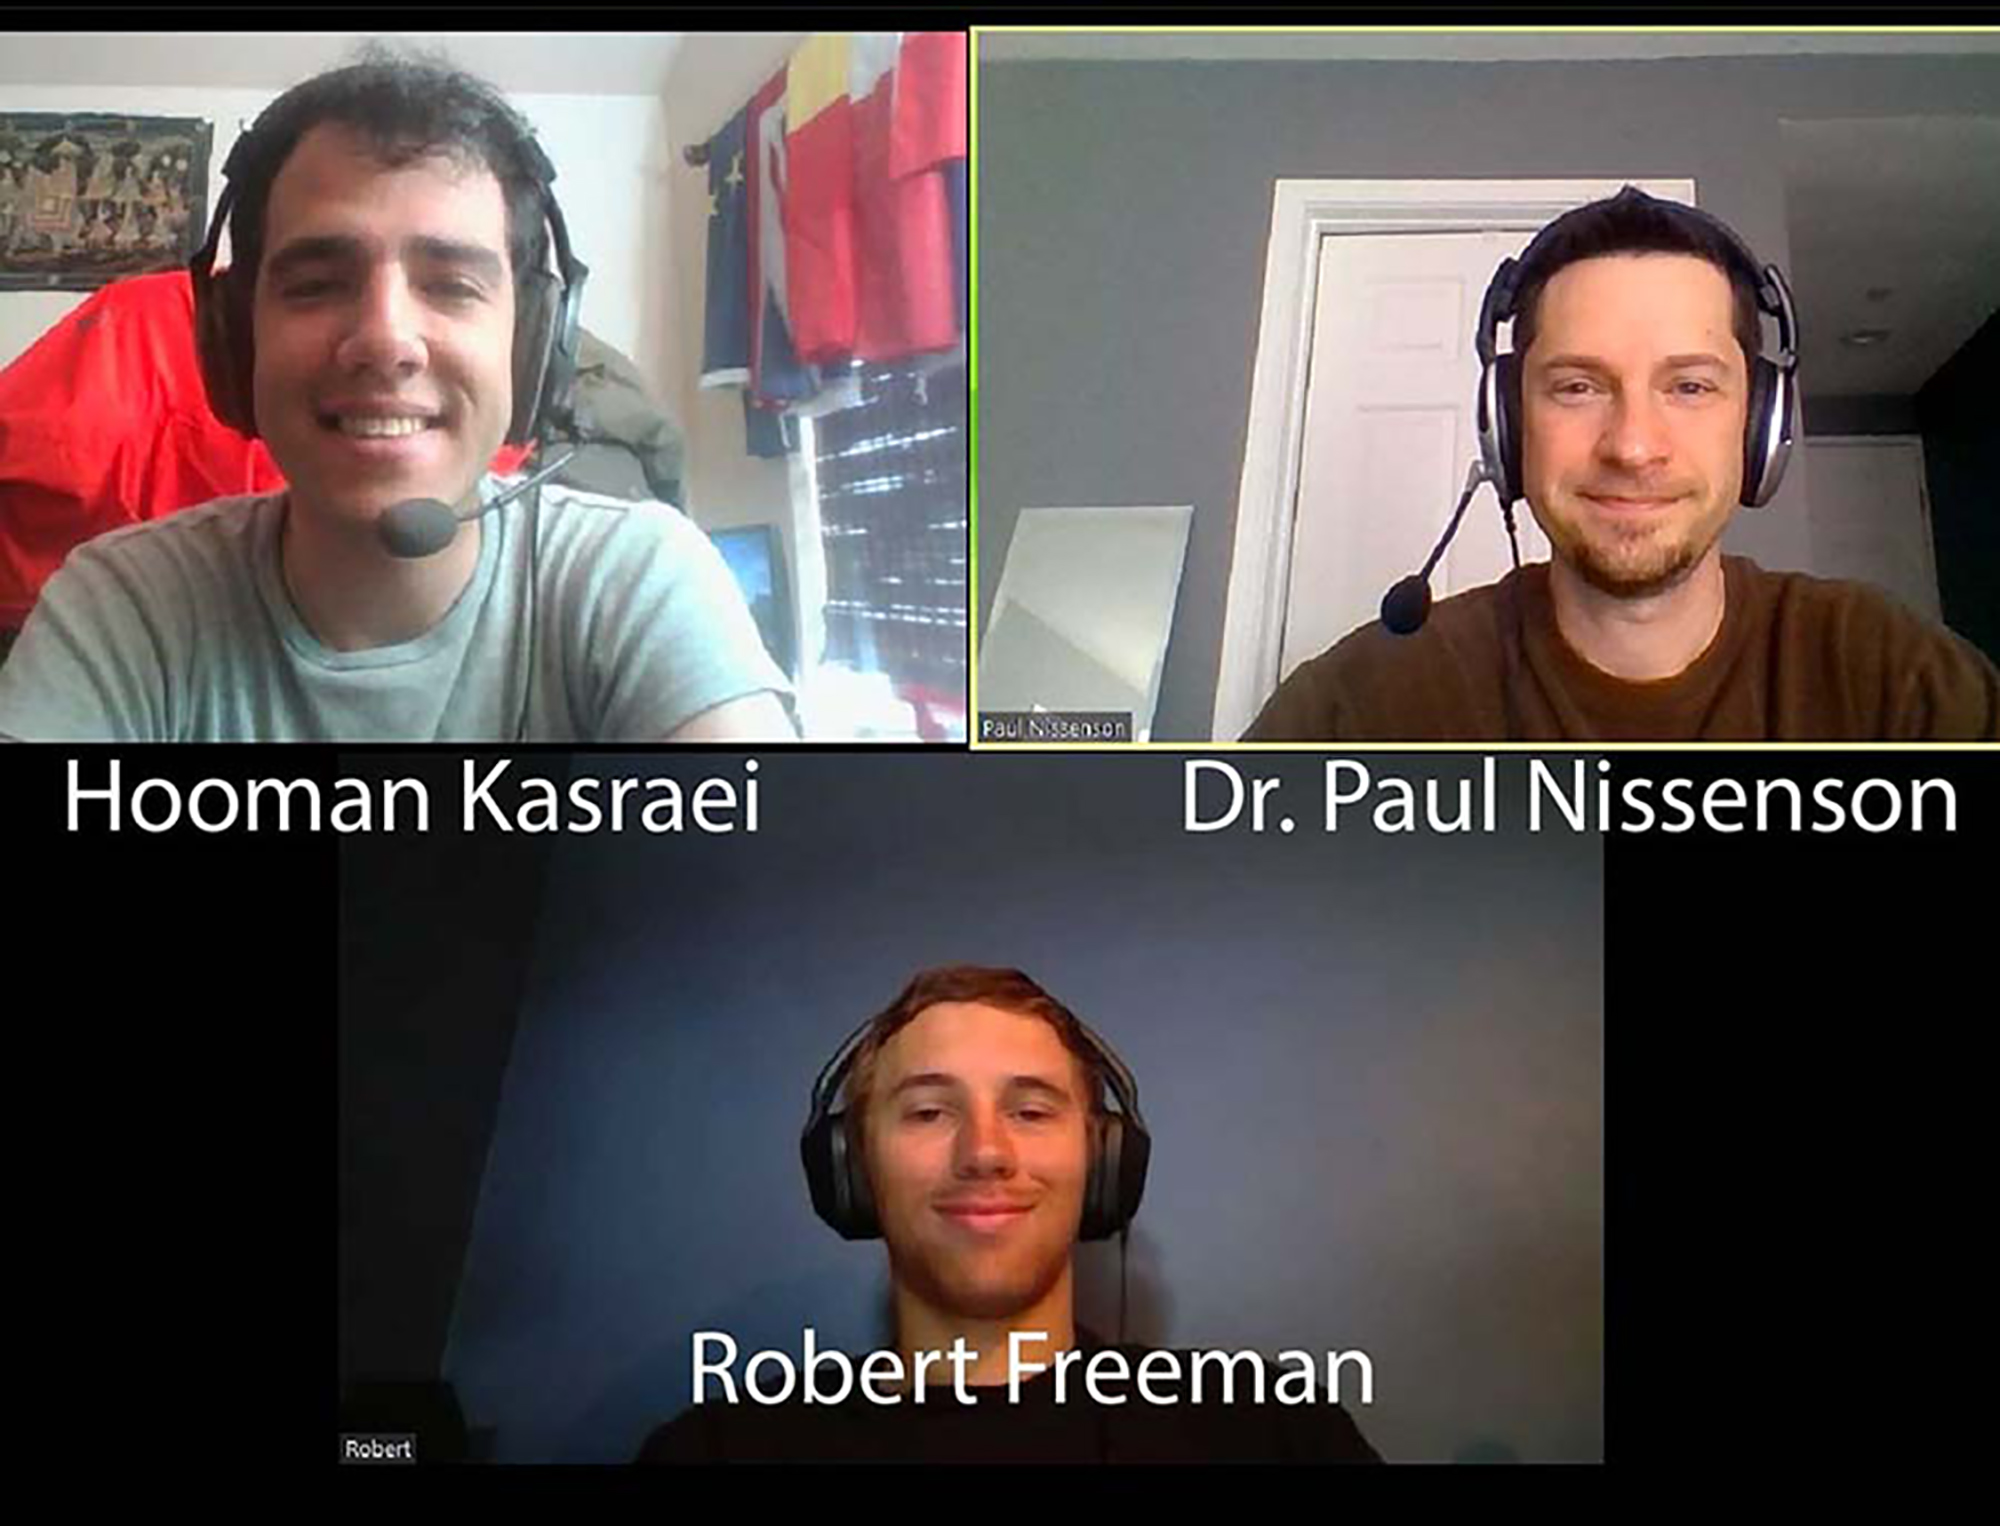 Pictured: Hooman Kasraei, Dr. Paul Nissenson, and Robert Freeman on a Zoom Call